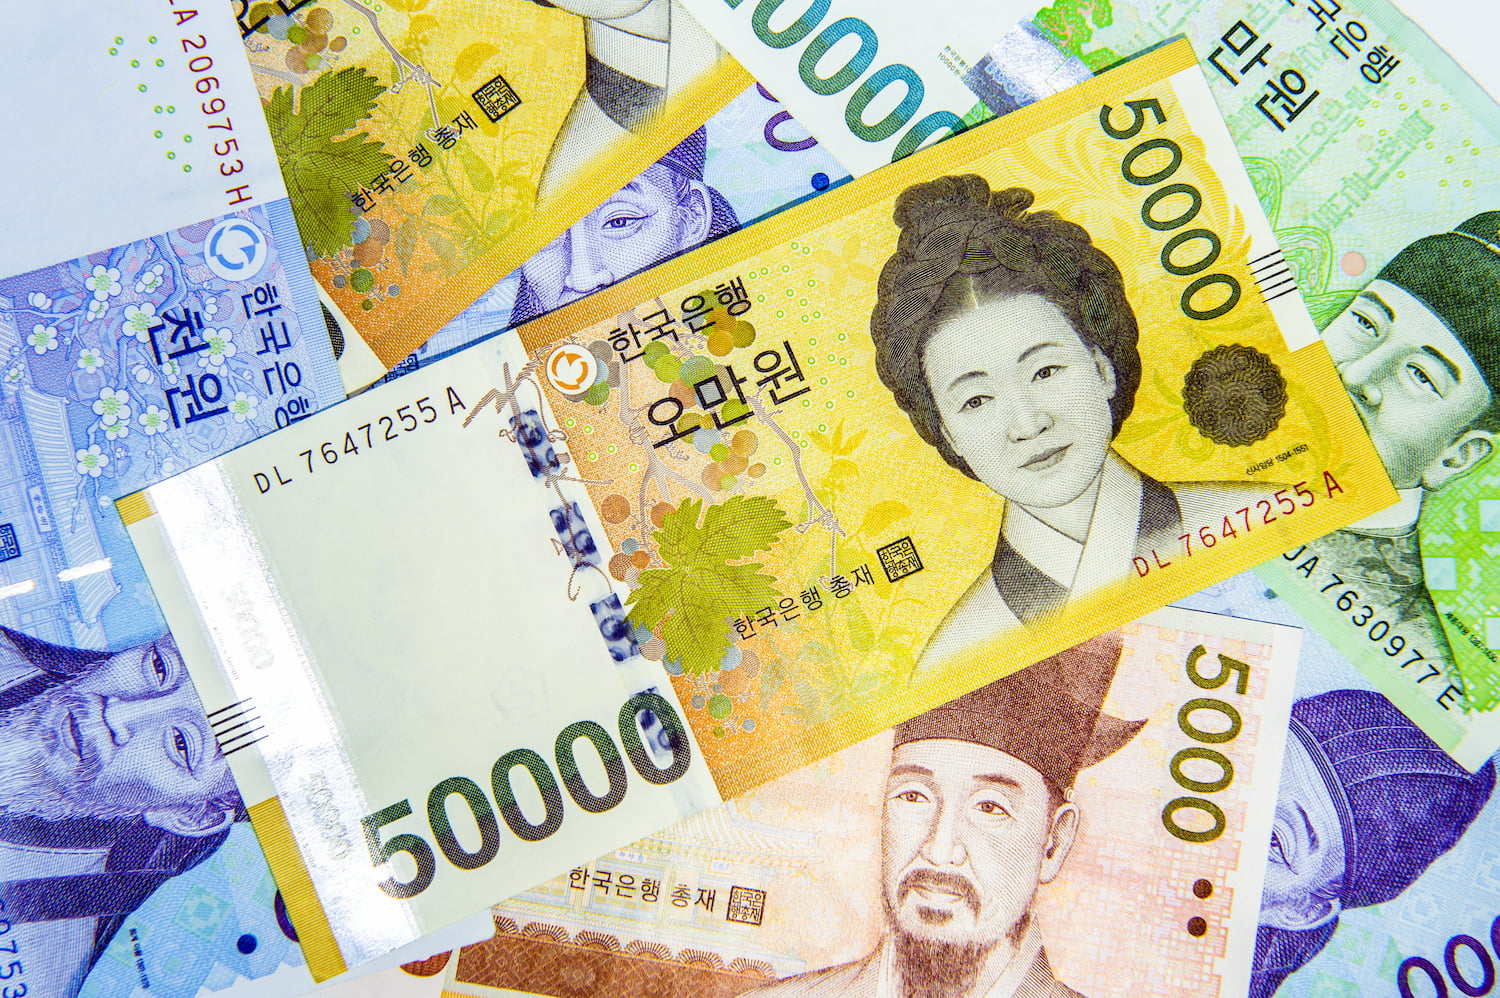 South Korea to Tighten Bitcoin Exchange Rules Amid 'Speculative' Boom